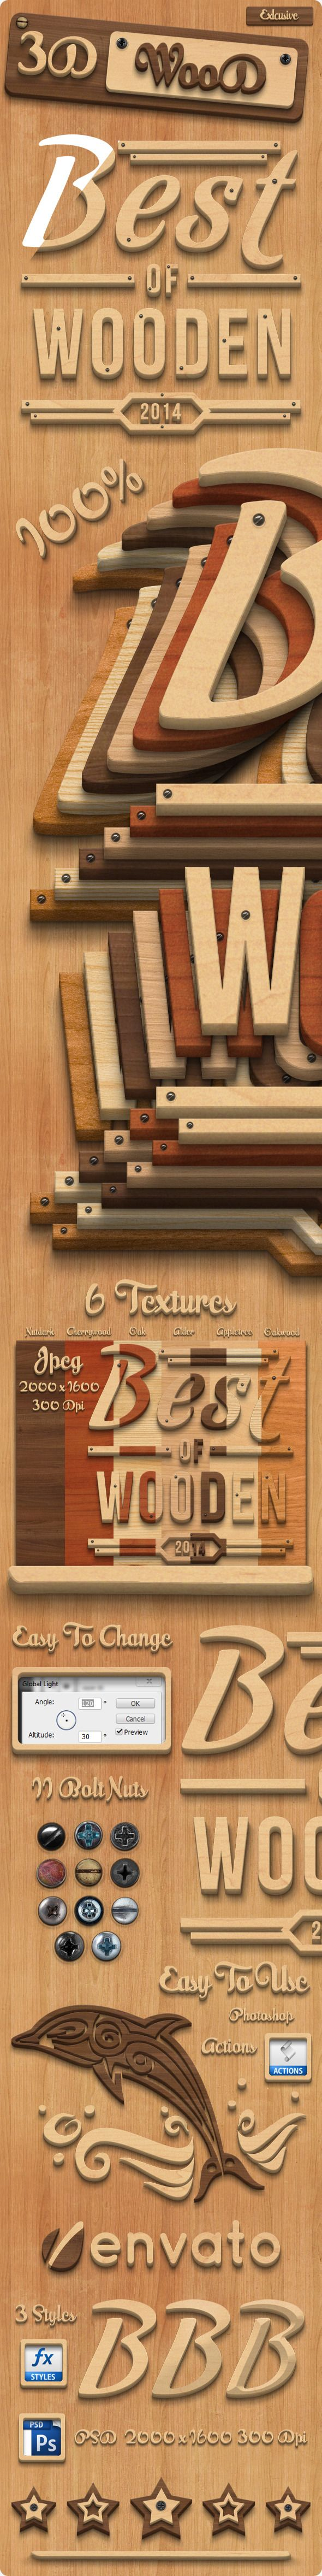 3D Wood Creation Photoshop Actions  #photoshop #premium #preset • Available here → http://graphicriver.net/item/3d-wood-creation-photoshop-actions/8012911?s_rank=29&ref=pxcr